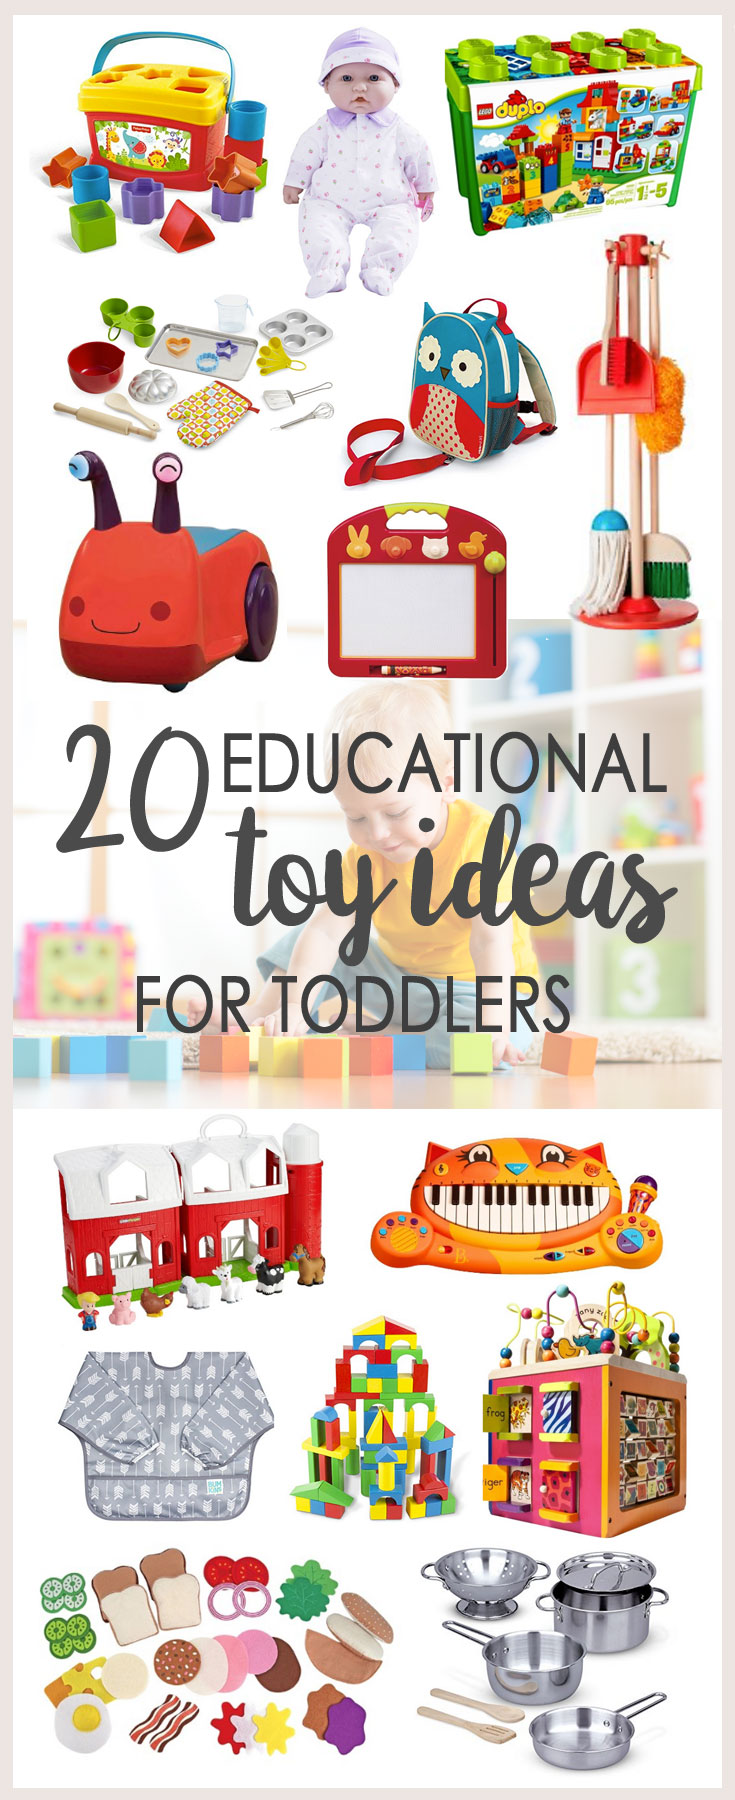 20 educational toy ideas for toddlers | mom makes joy